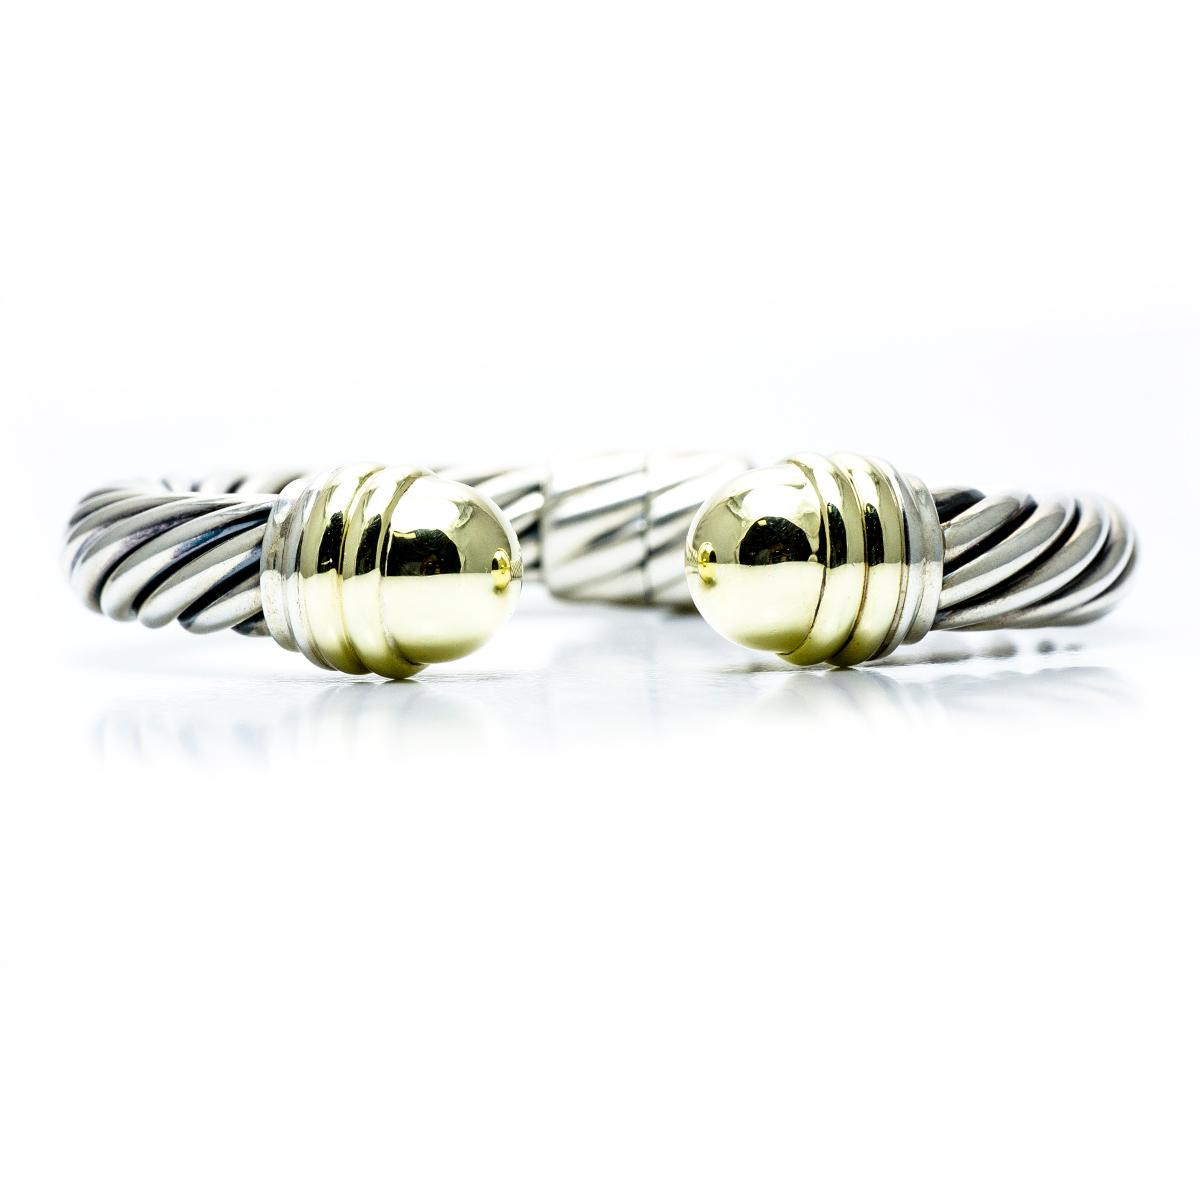 Vintage david yurman 14k sterling cable cuff bracelet for David yurman like bracelets